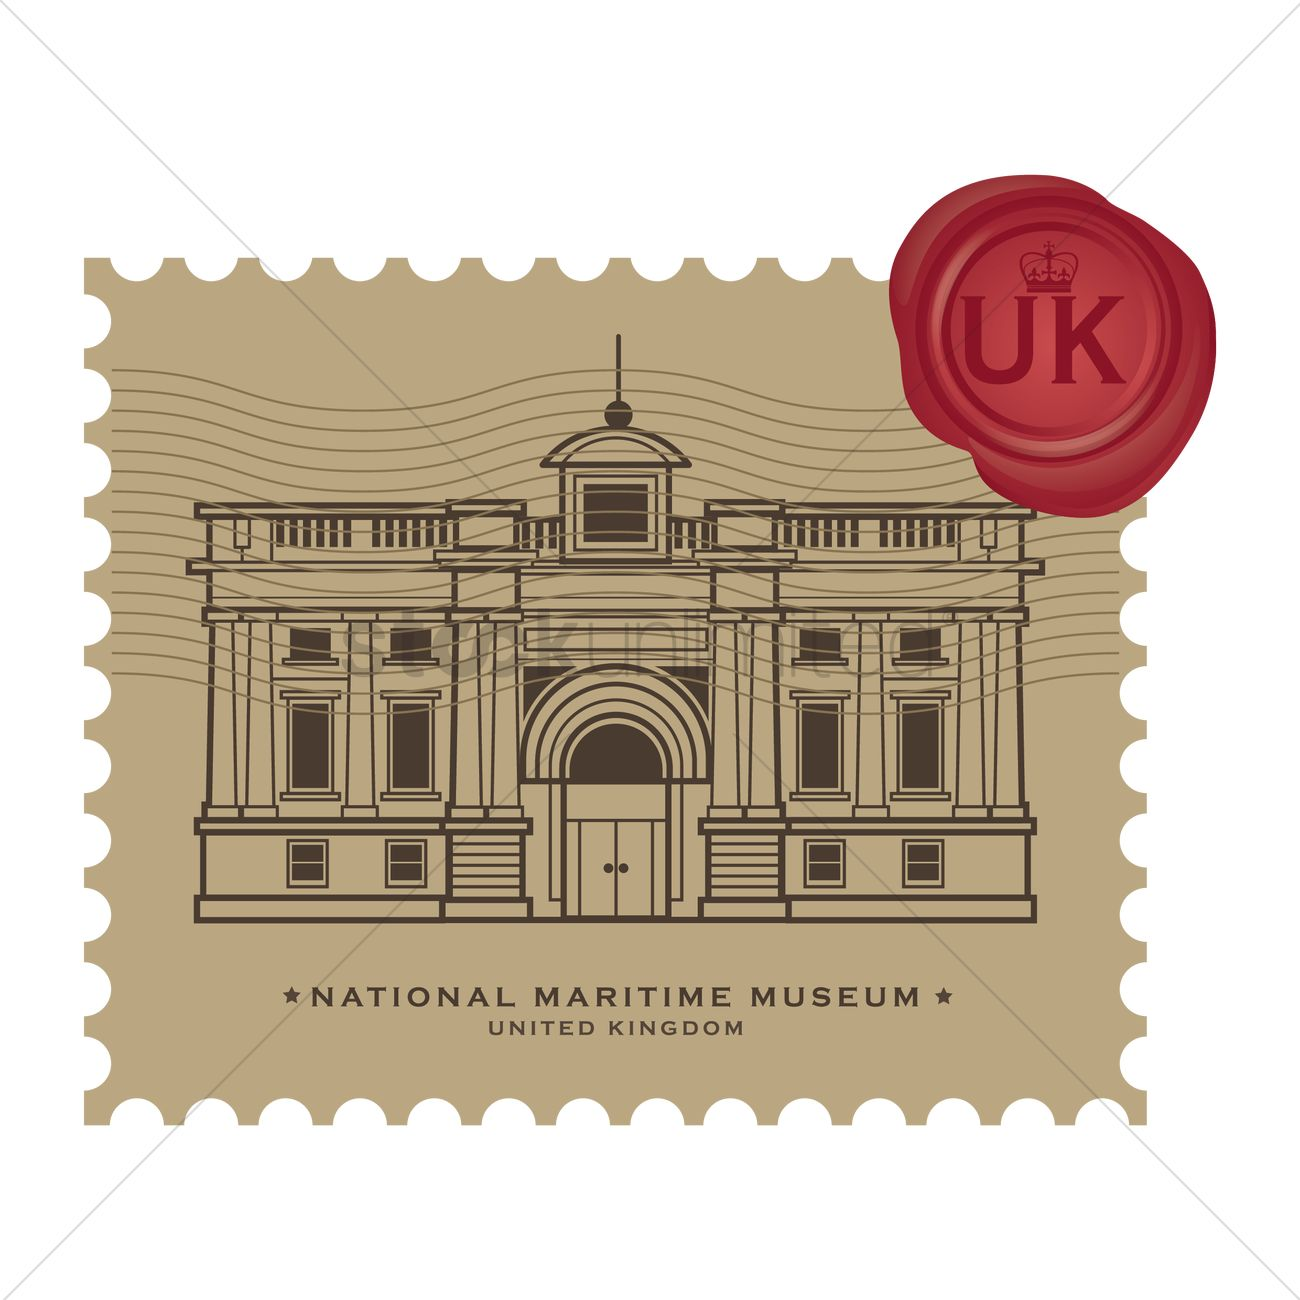 National maritime museum postage stamp Vector Image.